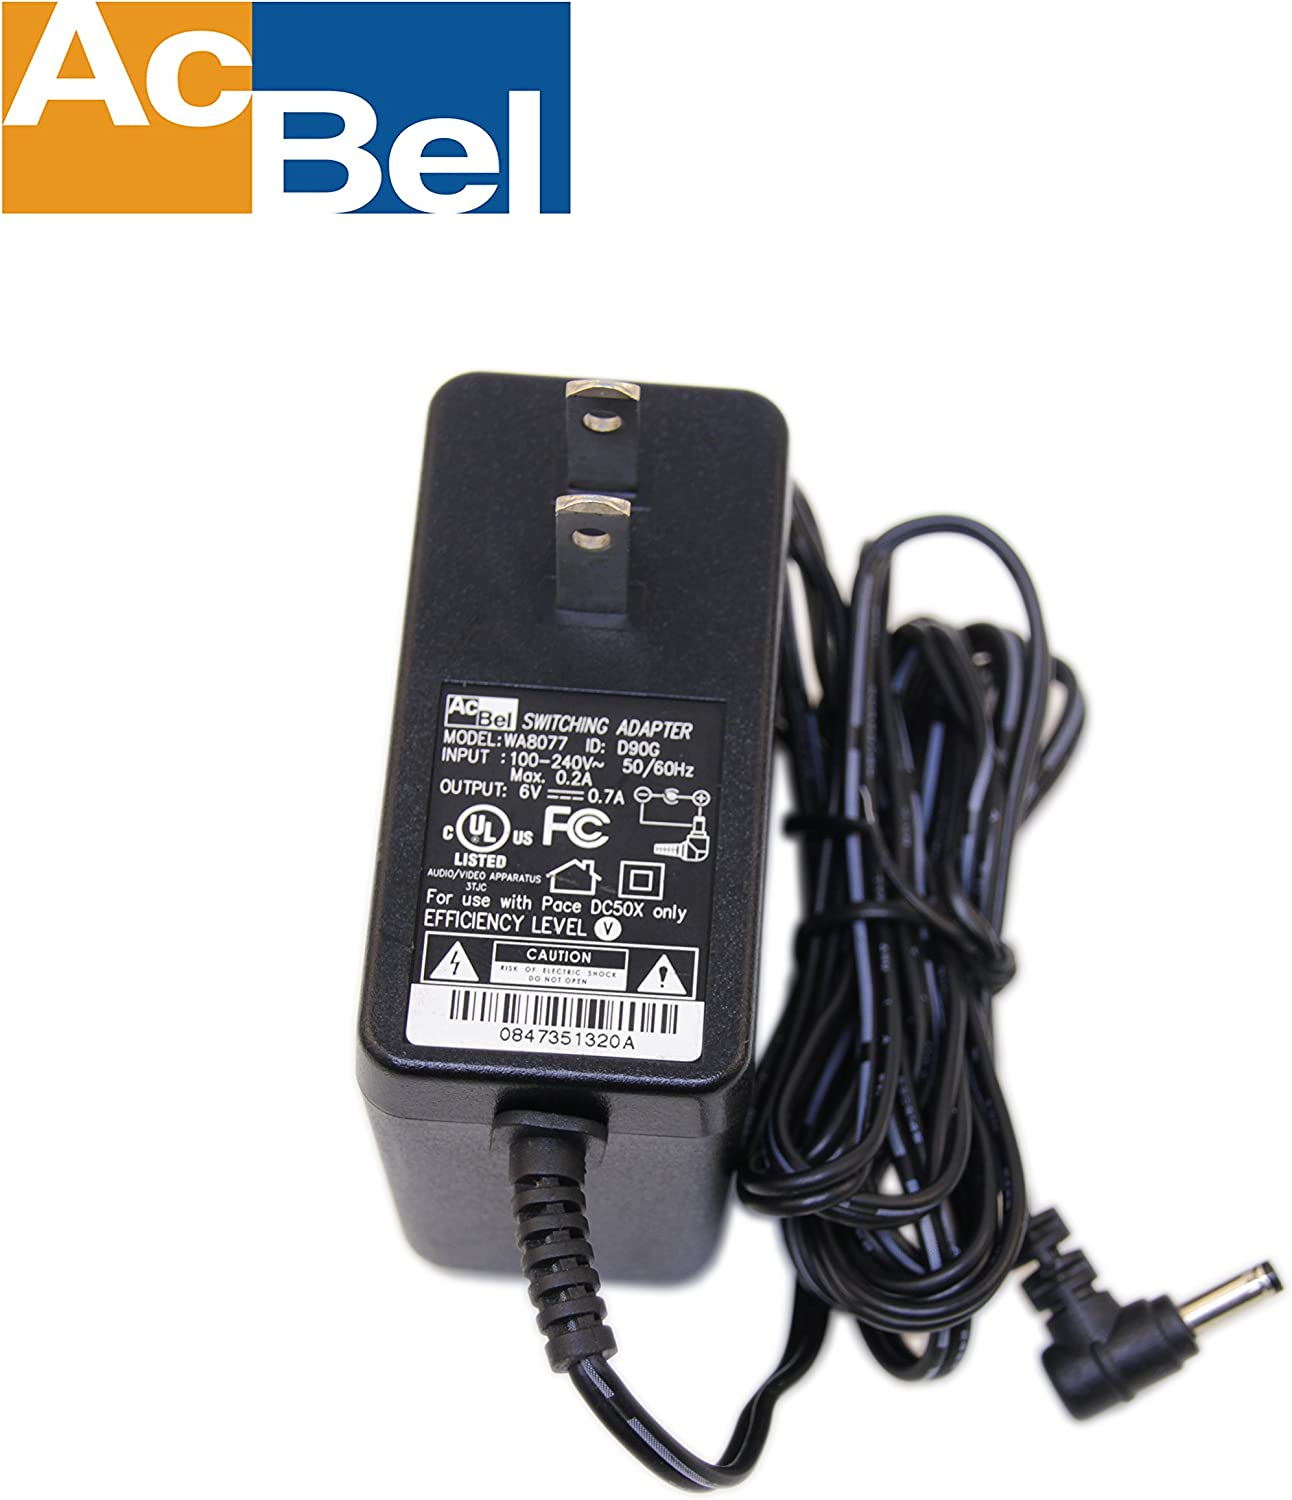 AcBel WA8077 D90G 6V 0.7A AC/DC Adapter Power Supply Charger for Pace  DC50X: Amazon.ca: ElectronicsAmazon.ca